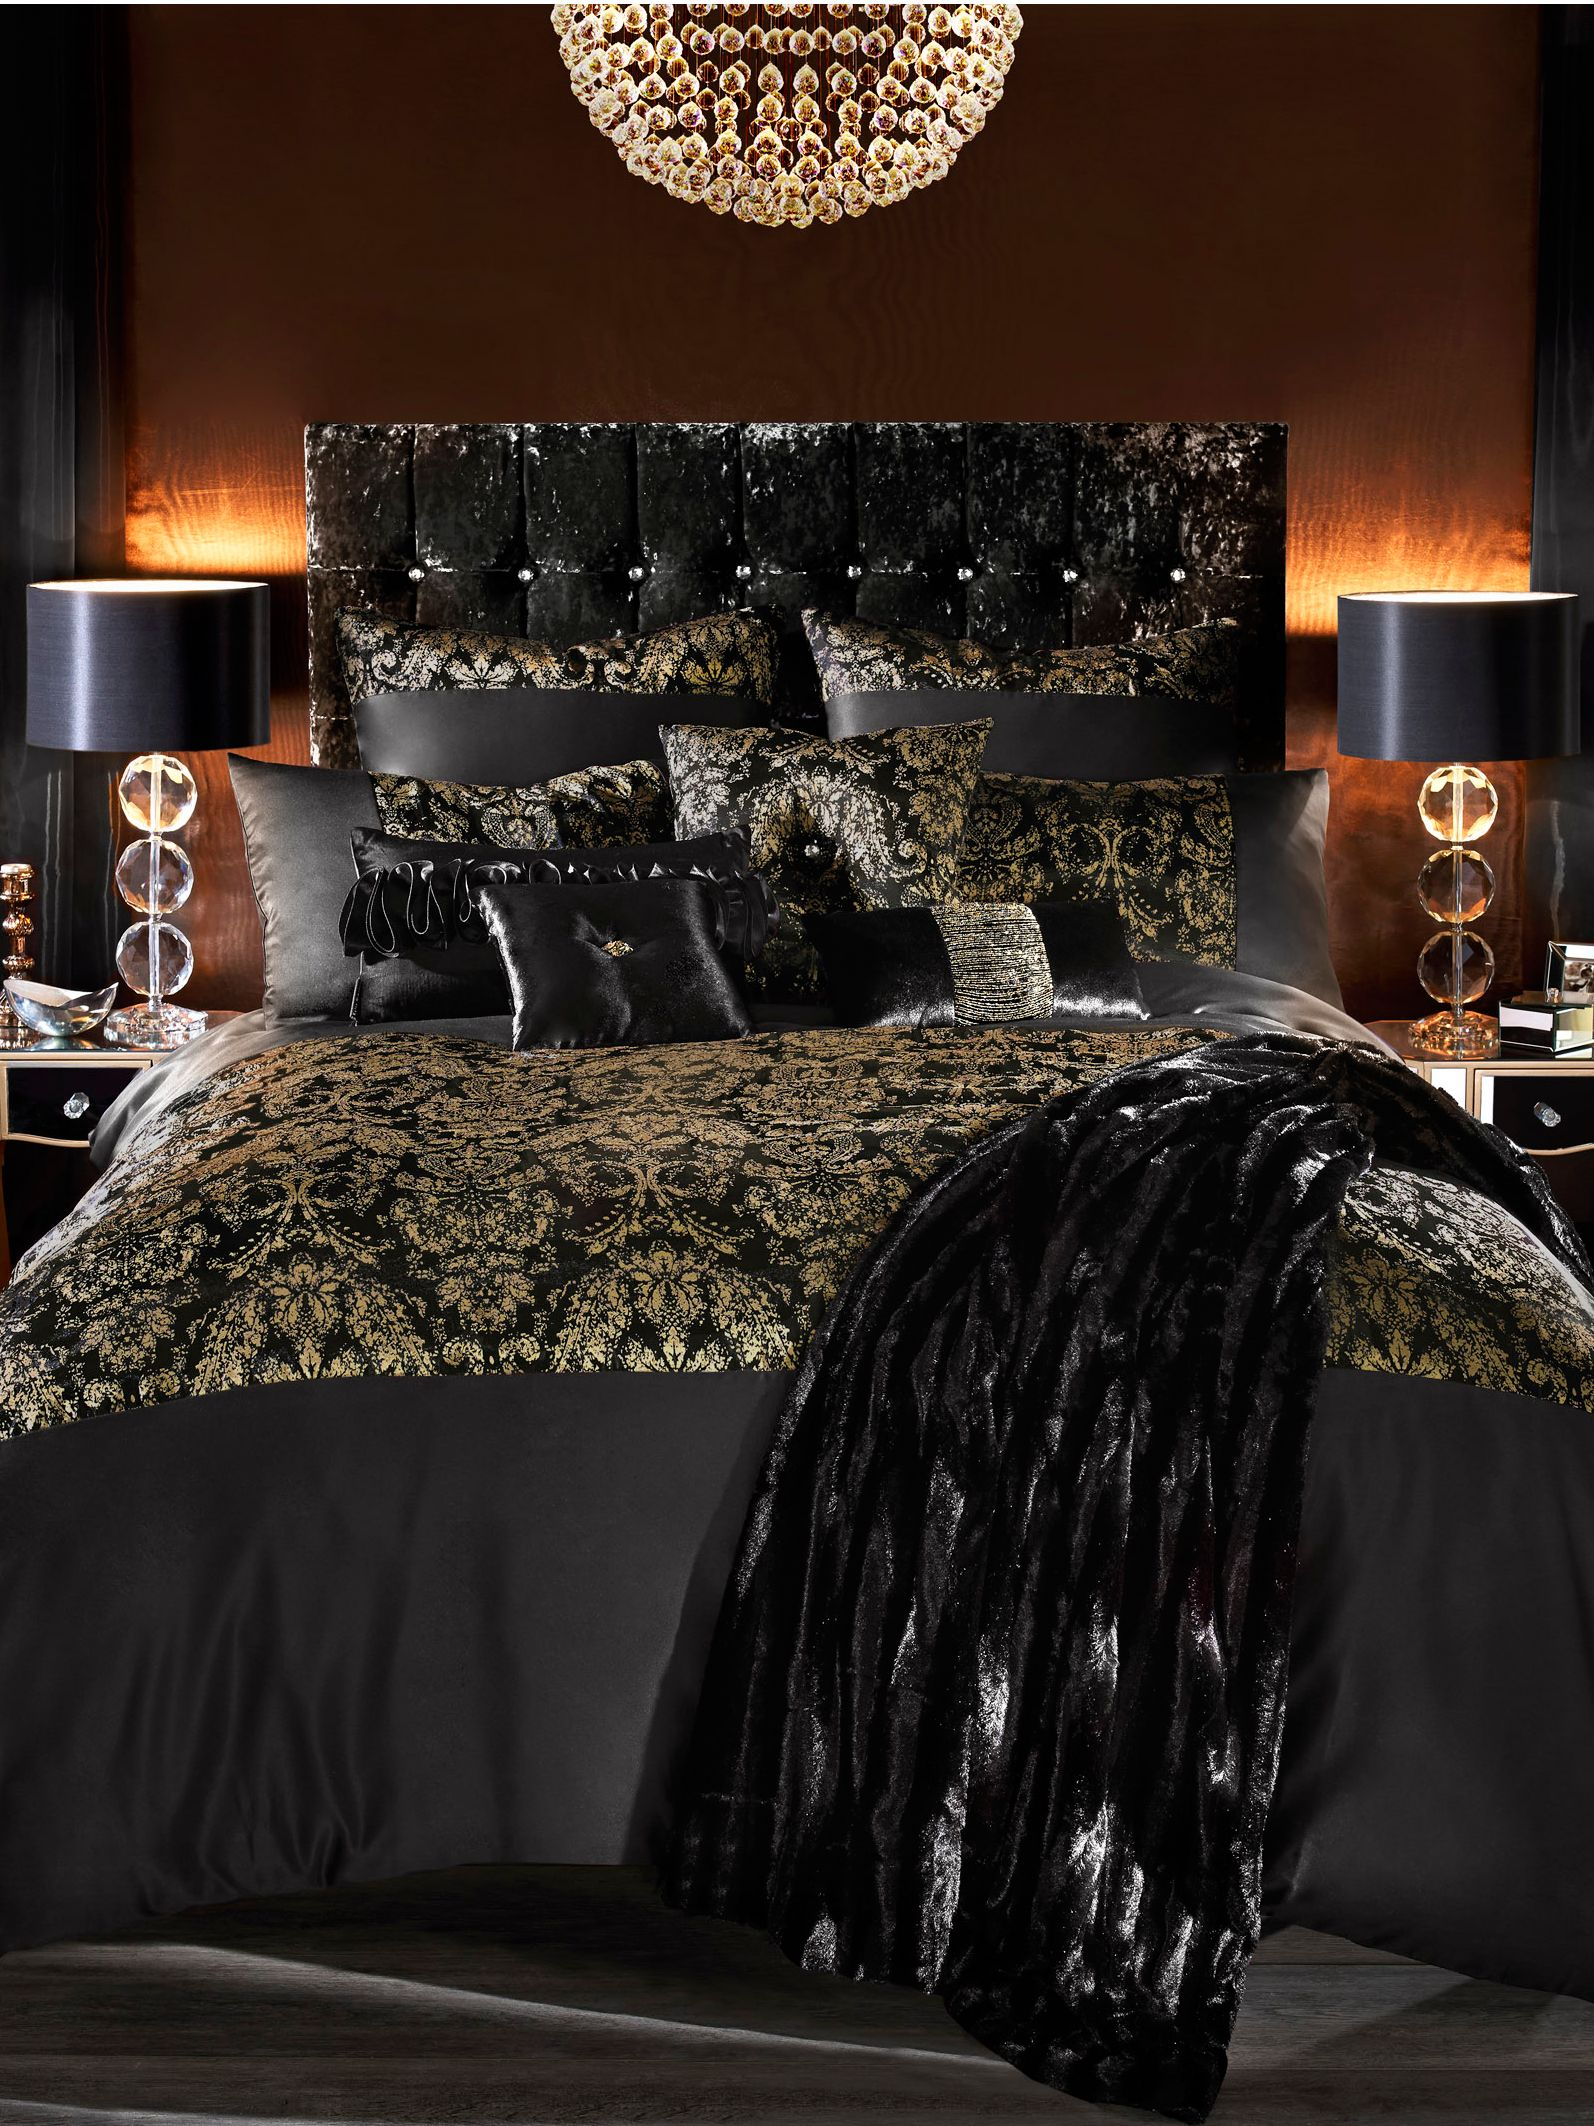 Alondra super king duvet cover in black and gold